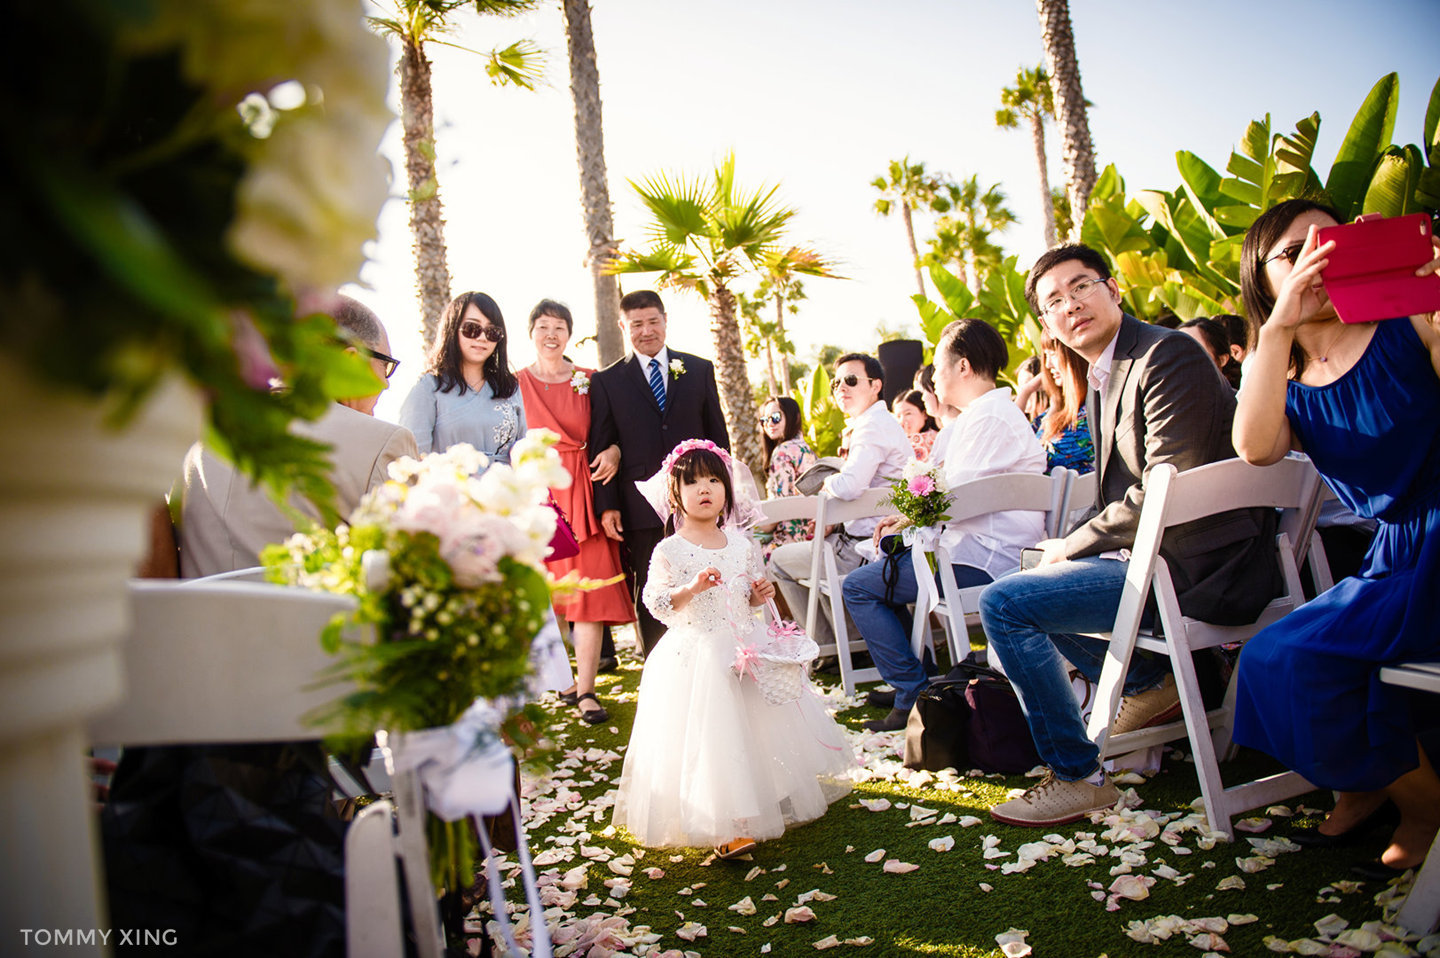 Paradise Point Resort Wedding Xiaolu & Bin San Diego 圣地亚哥婚礼摄影跟拍 Tommy Xing Photography 洛杉矶婚礼婚纱照摄影师 183.jpg